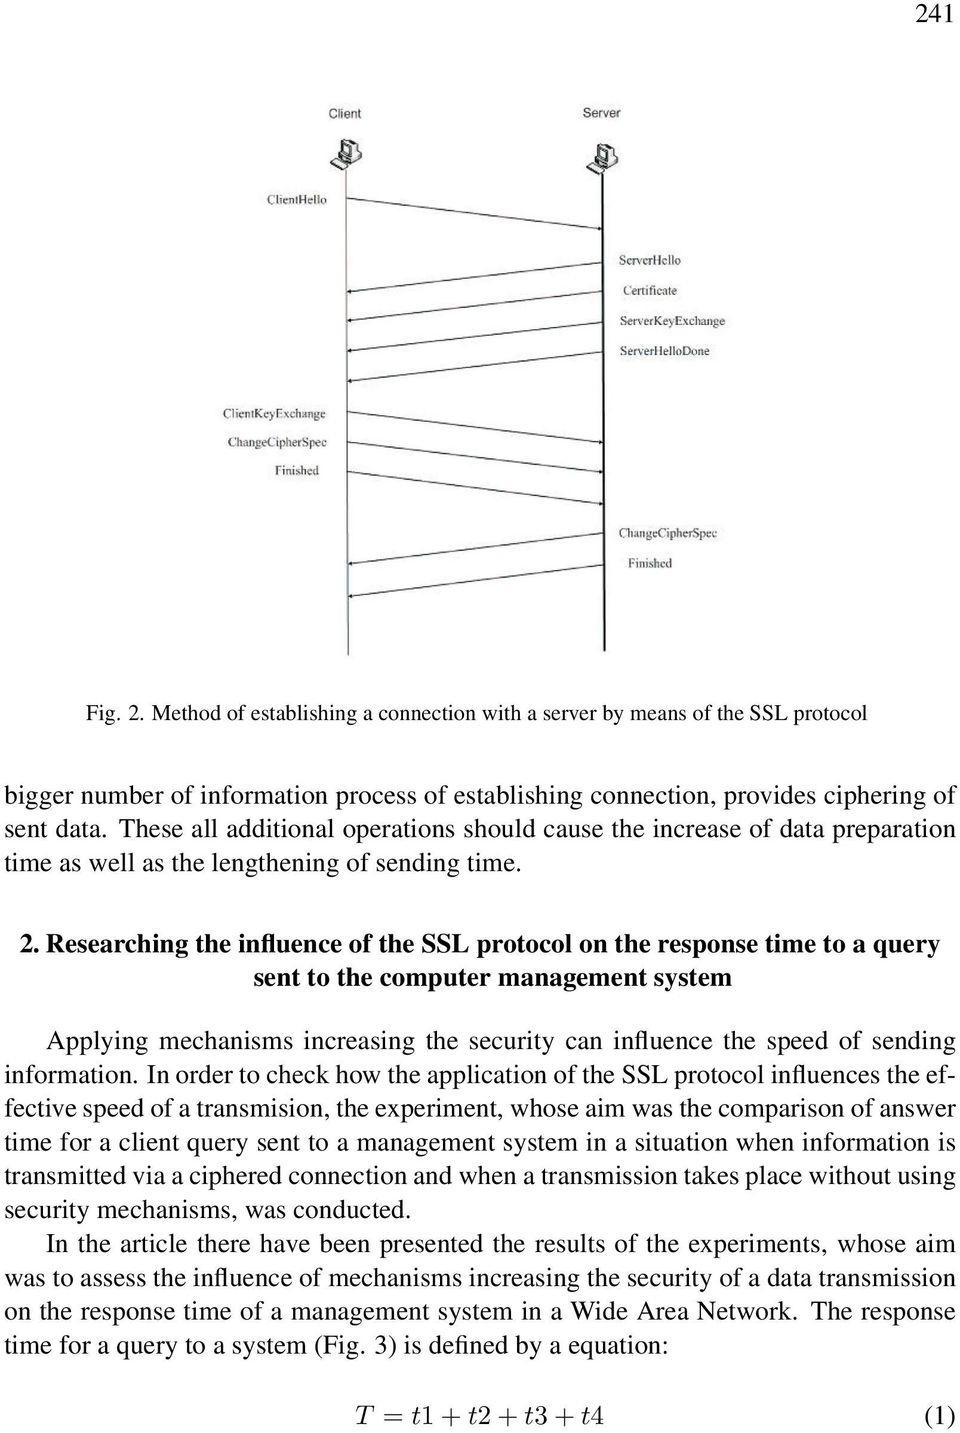 Researching the influence of the SSL protocol on the response time to a query sent to the computer management system Applying mechanisms increasing the security can influence the speed of sending